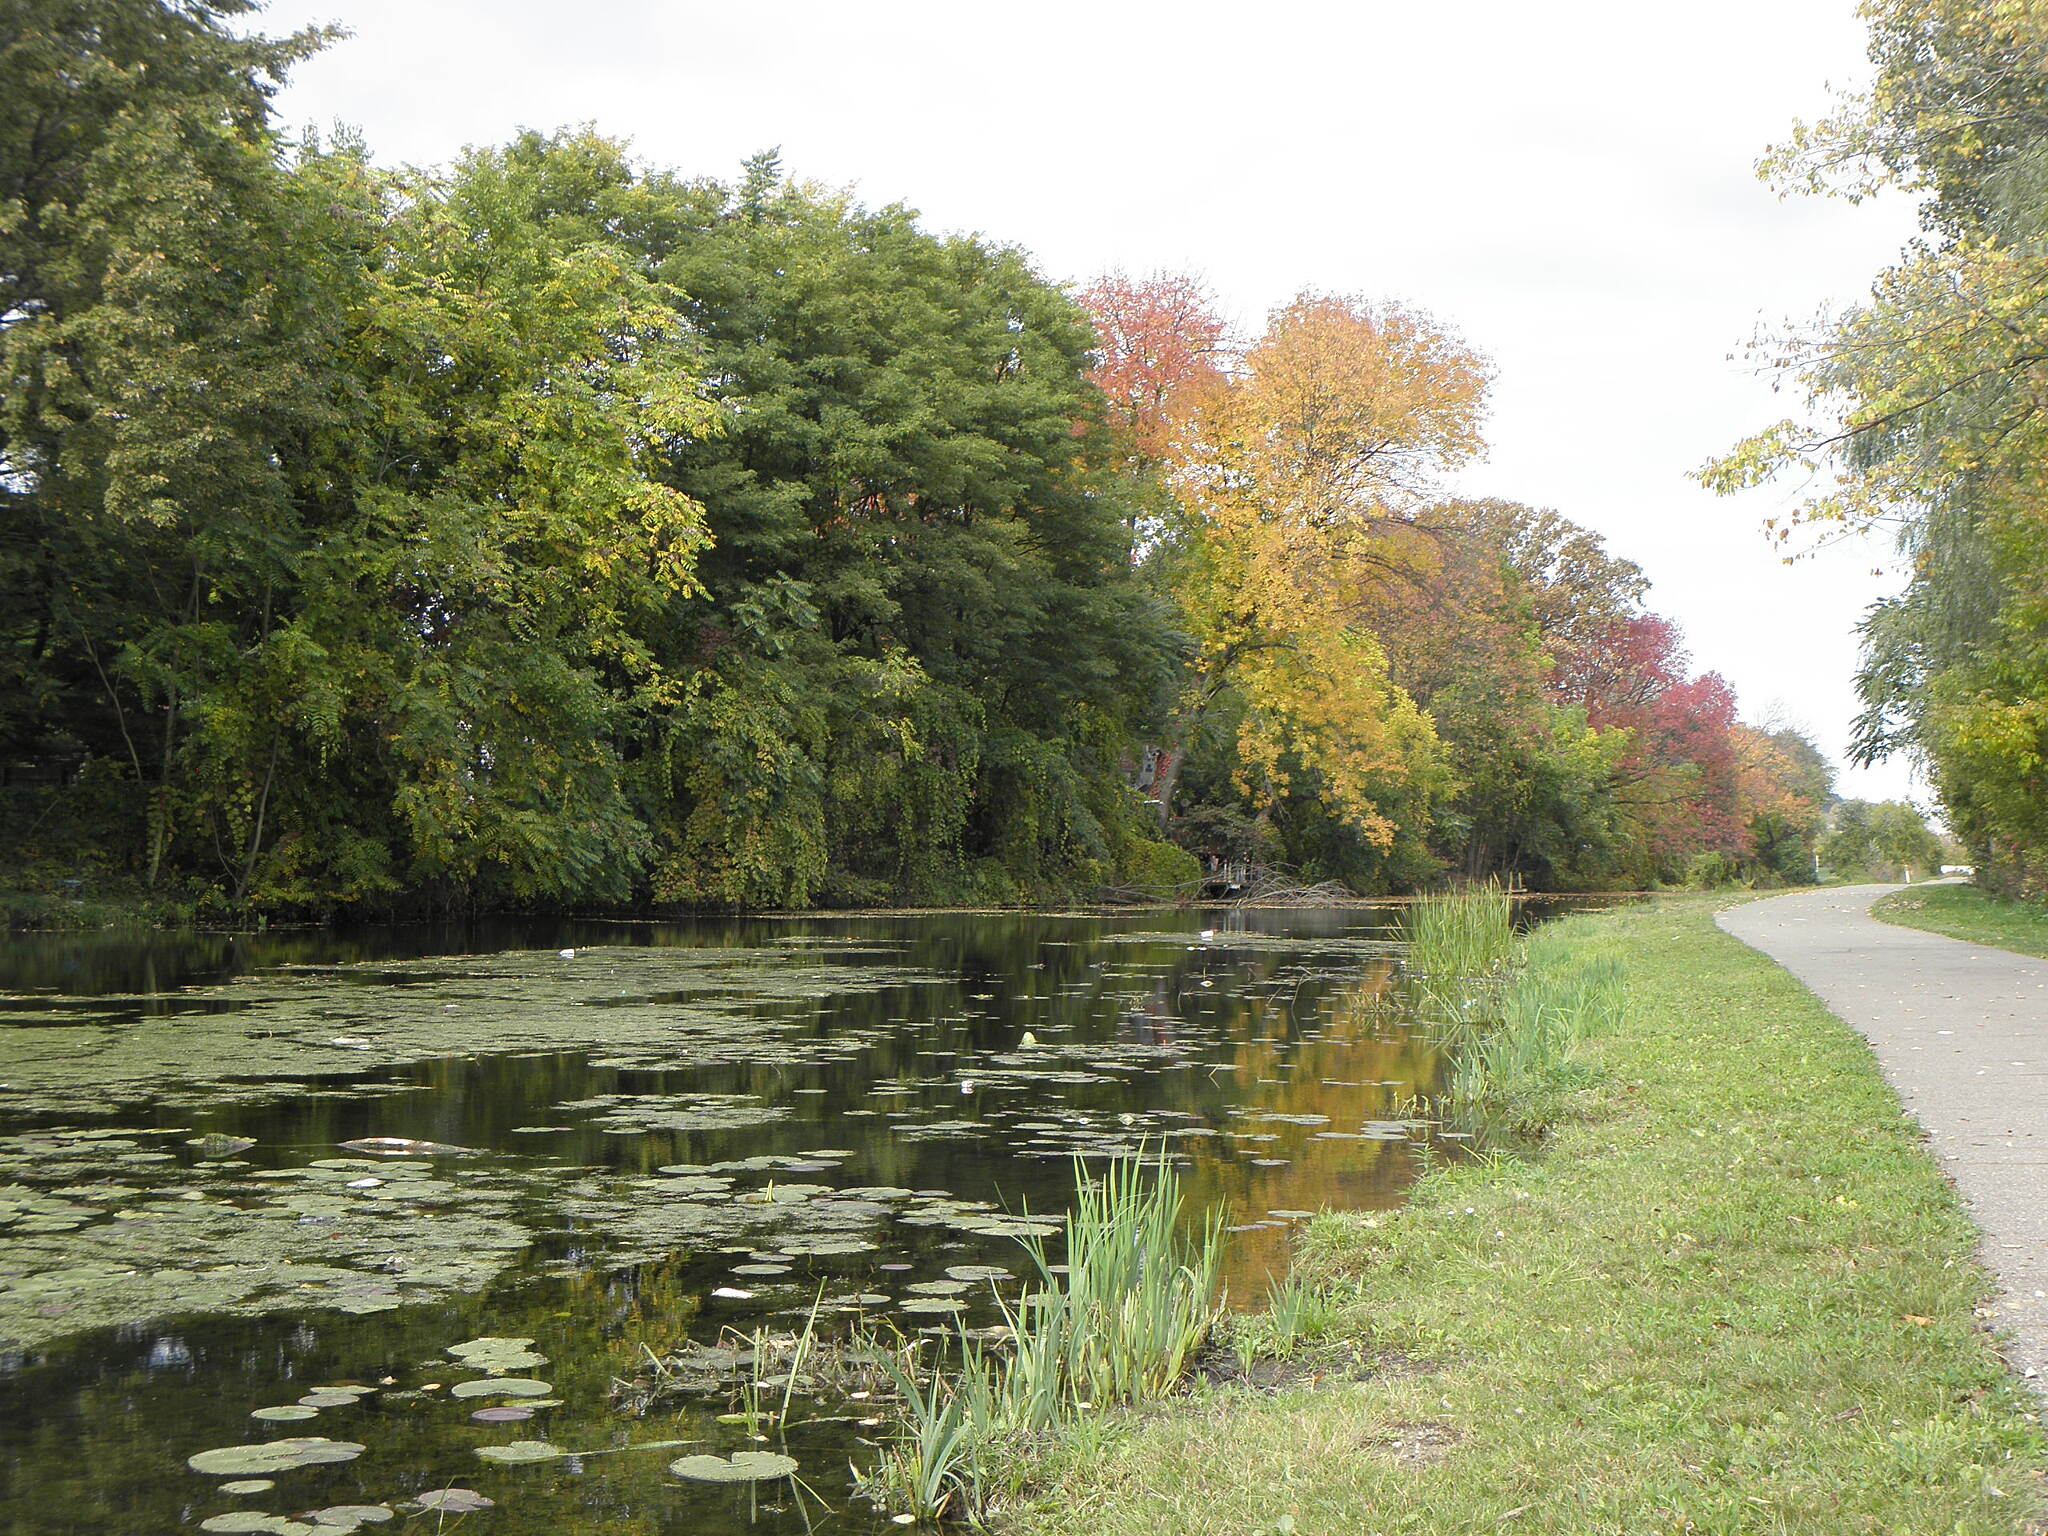 Ohio & Erie Canal Towpath Trail Fall colors on the canal Early October